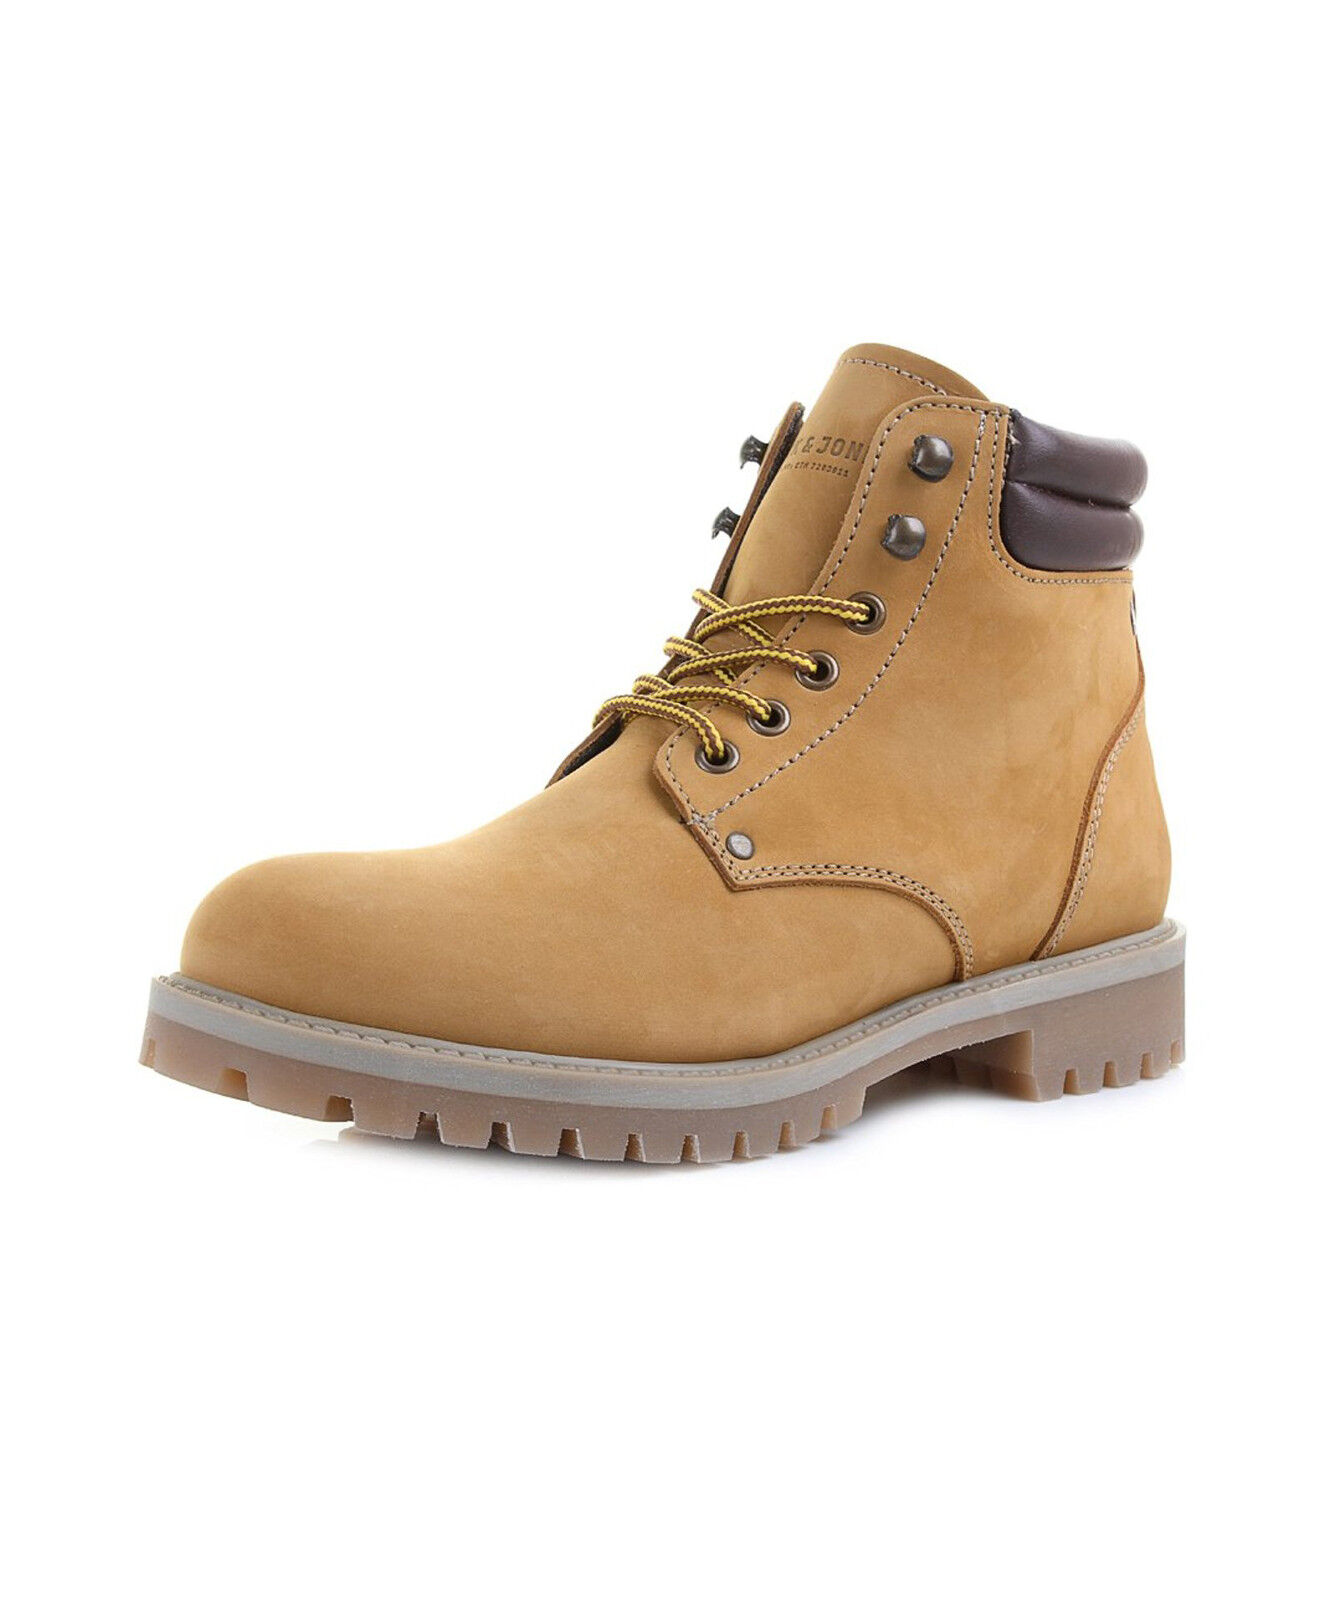 JACK & JONES Nubuck Stoke Leder Stiefel High Top Schuhes Honey Beige Biker Boot